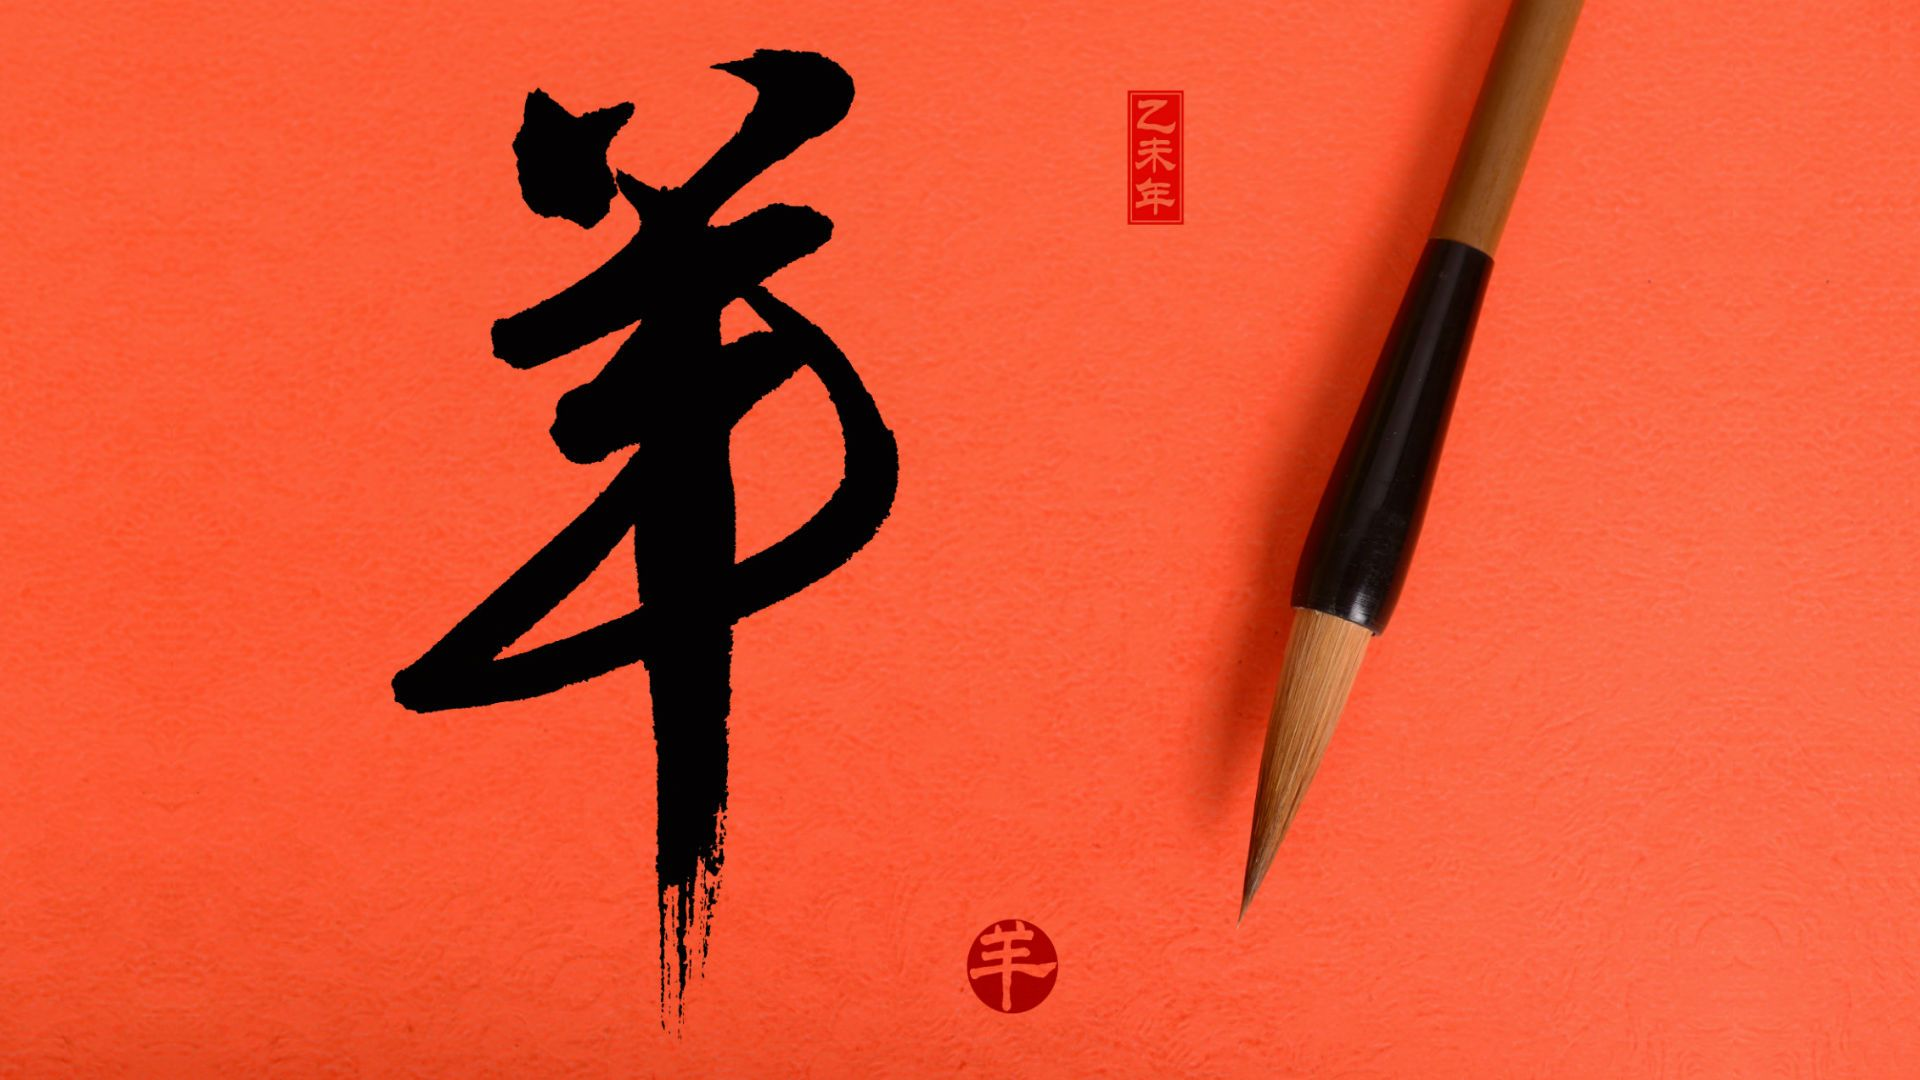 1920x1080 Chinese New Year Calligraphy Wallpaper Pics. - Media file ...